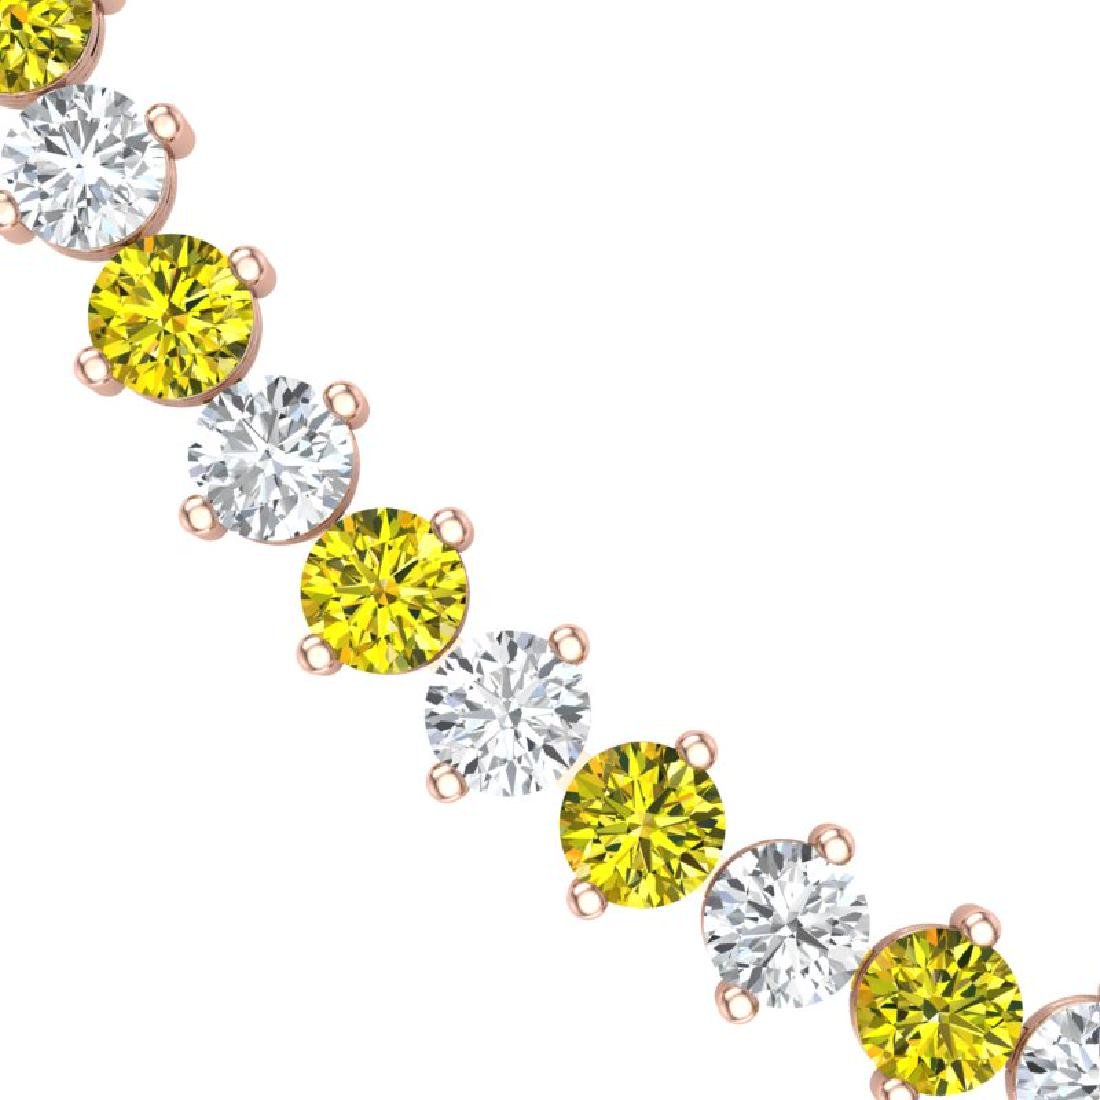 45 CTW SI/I Fancy Yellow & White Diamond Necklace 18K - 2